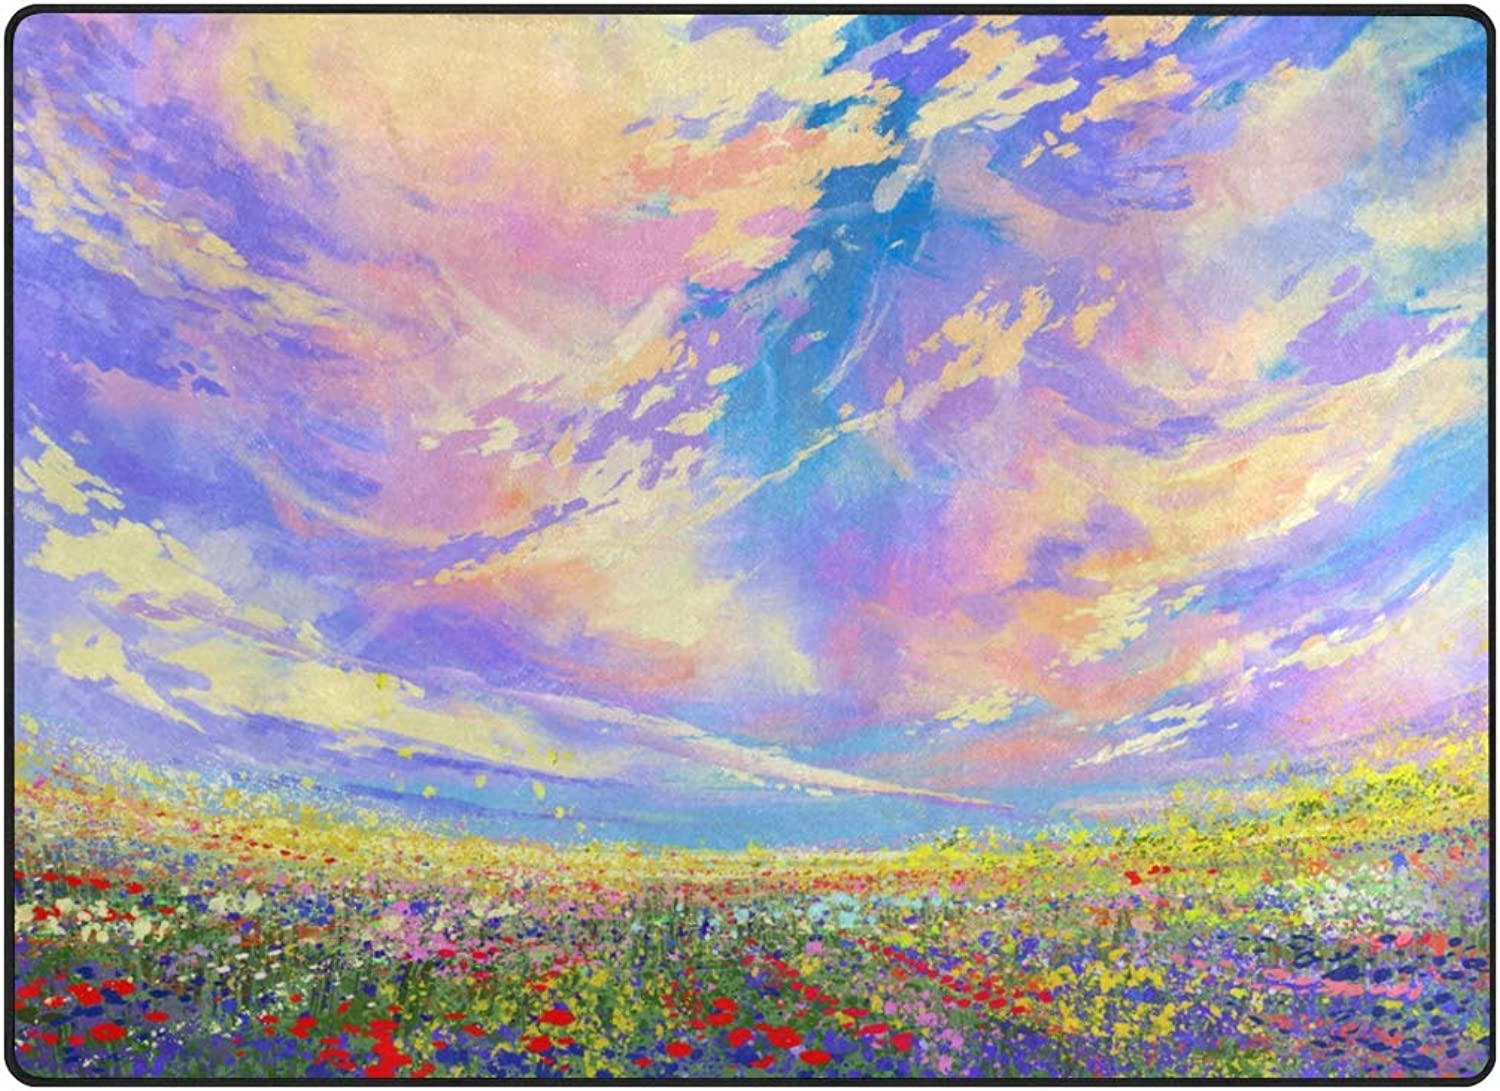 Vantaso Soft Foam Nursery Rugs colorful Sky Flowers in Field Non Slip Play Mats for Kids Boys Girls Playing Room Living Room 63x48 inch